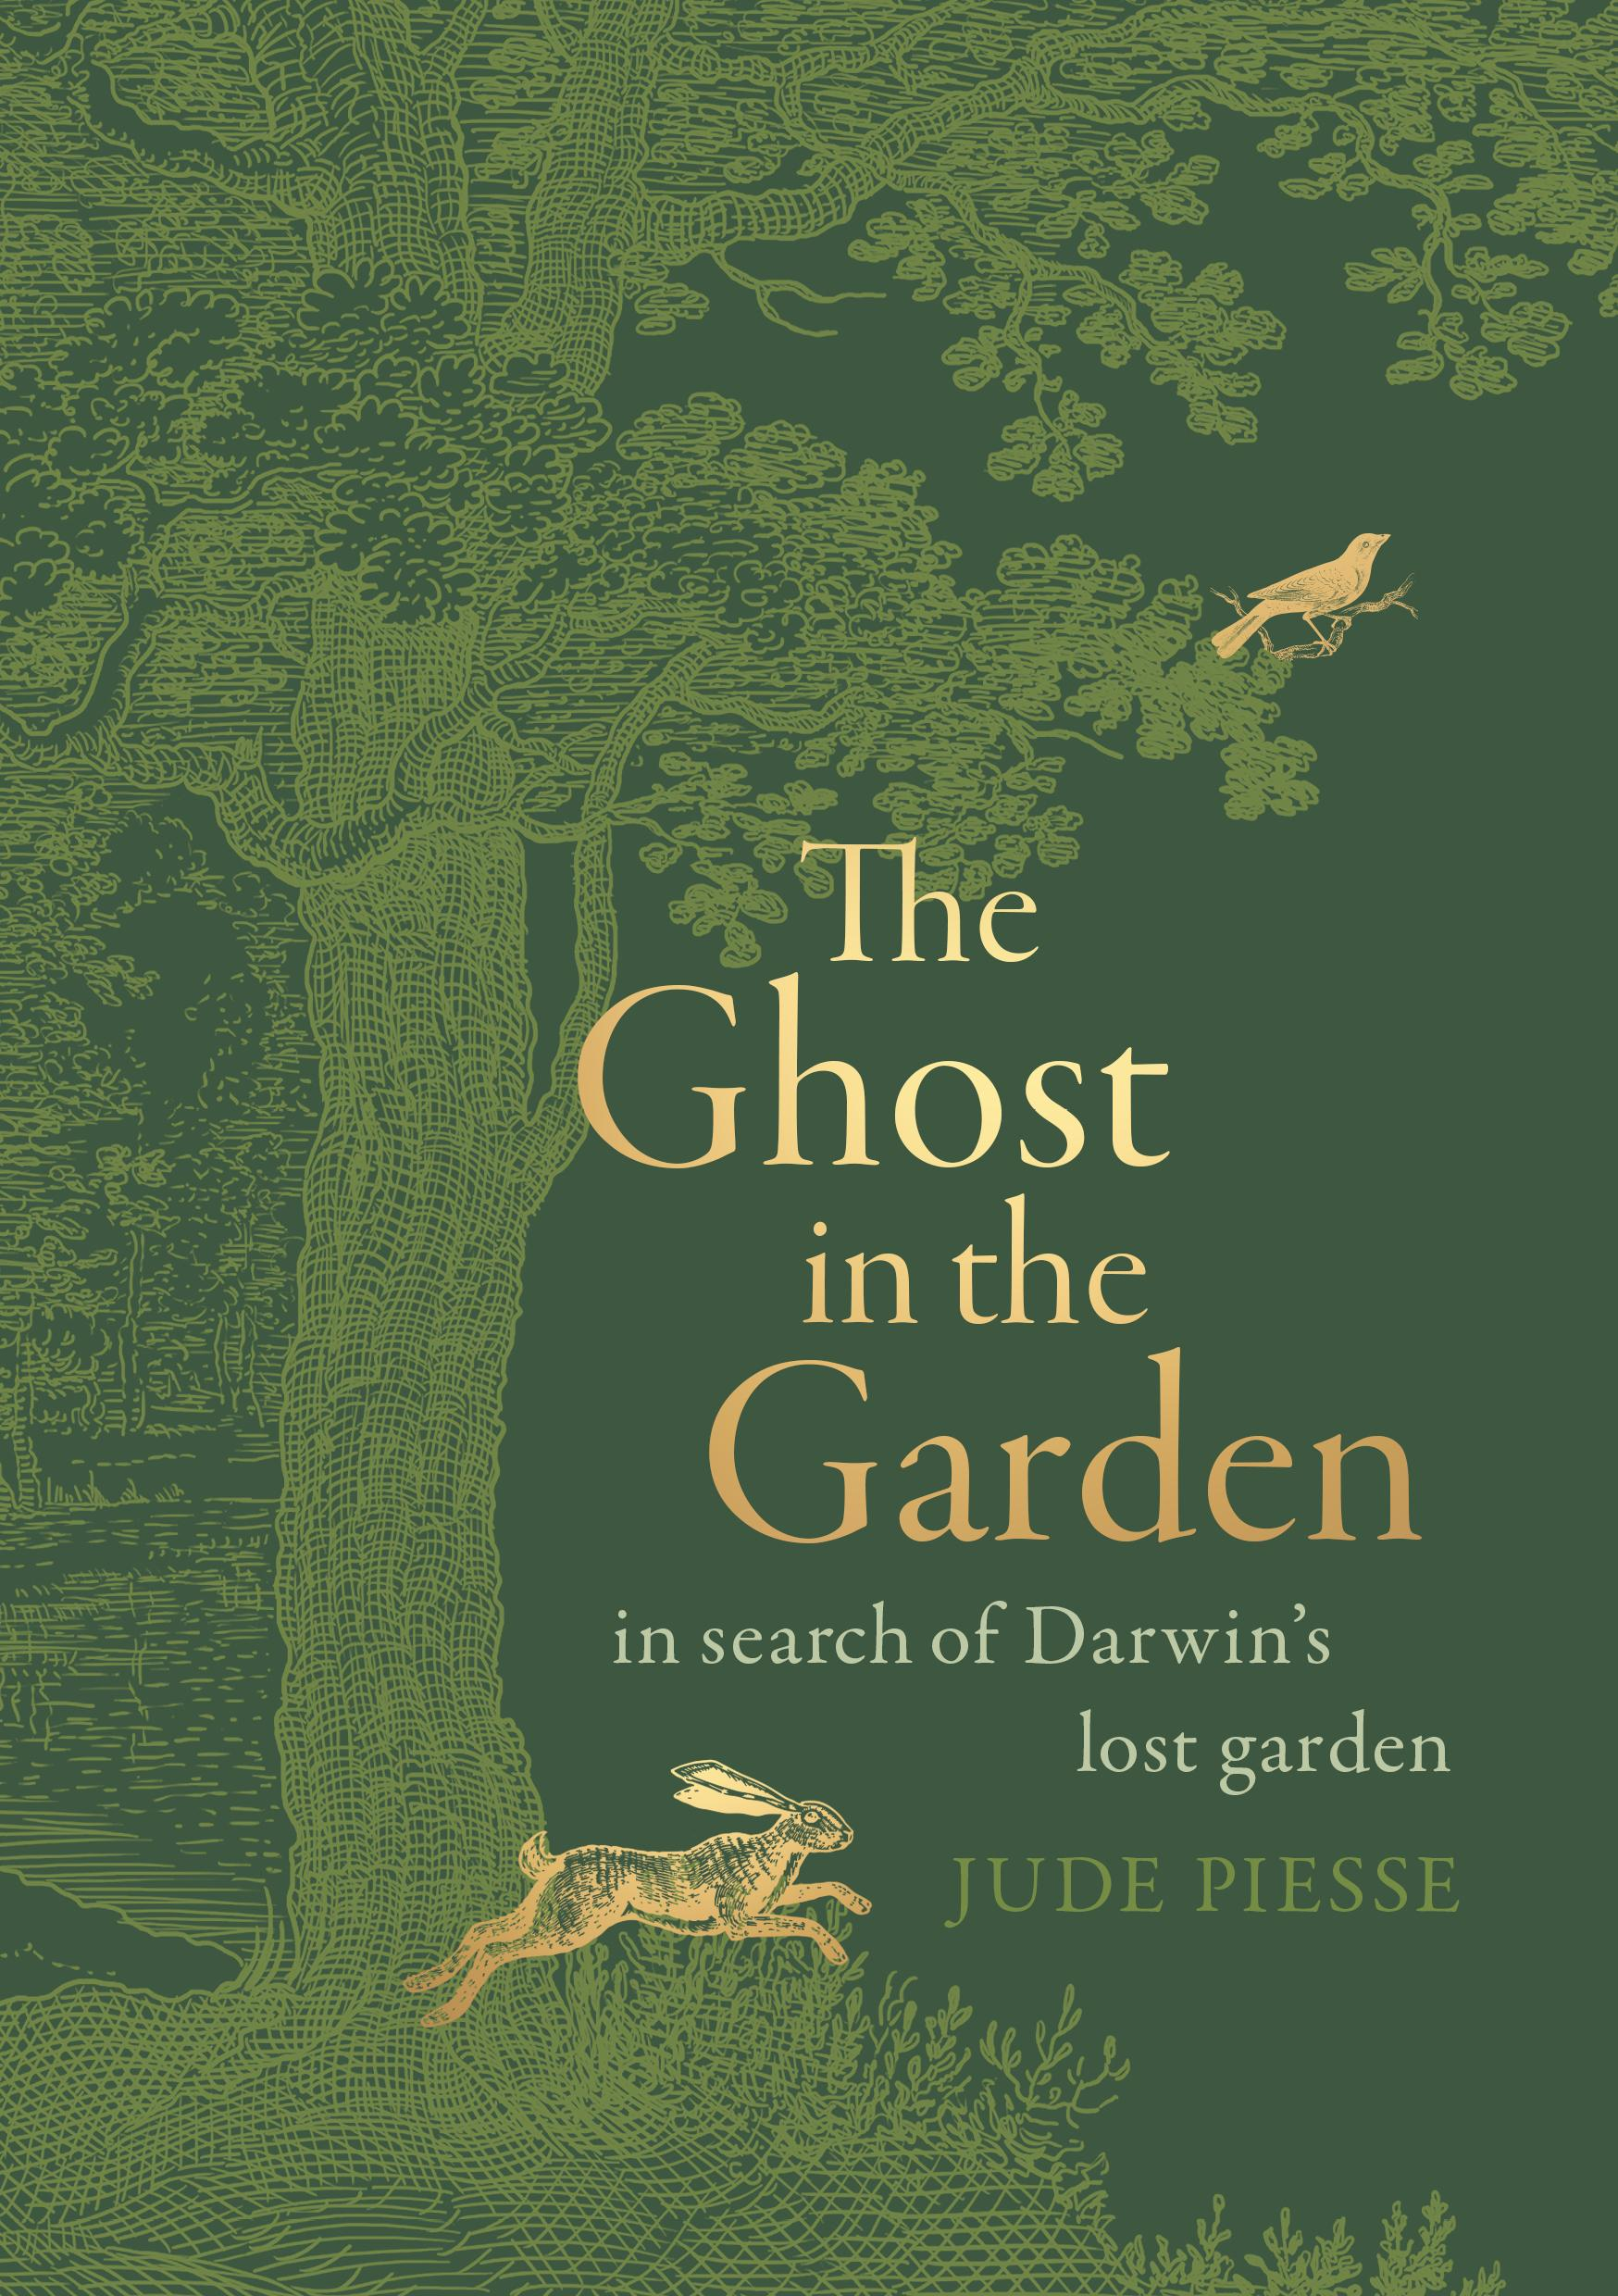 The Ghost In The Garden: In Search of Darwin's Lost Garden